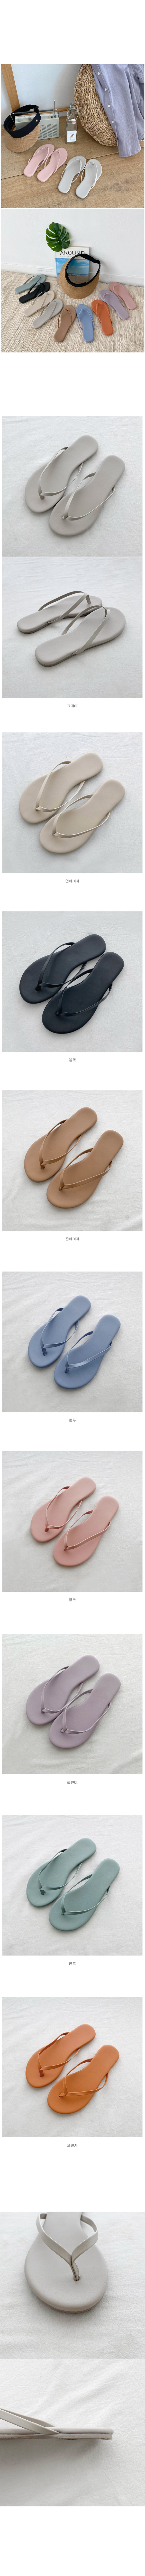 Summer Daily Cooking Slippers